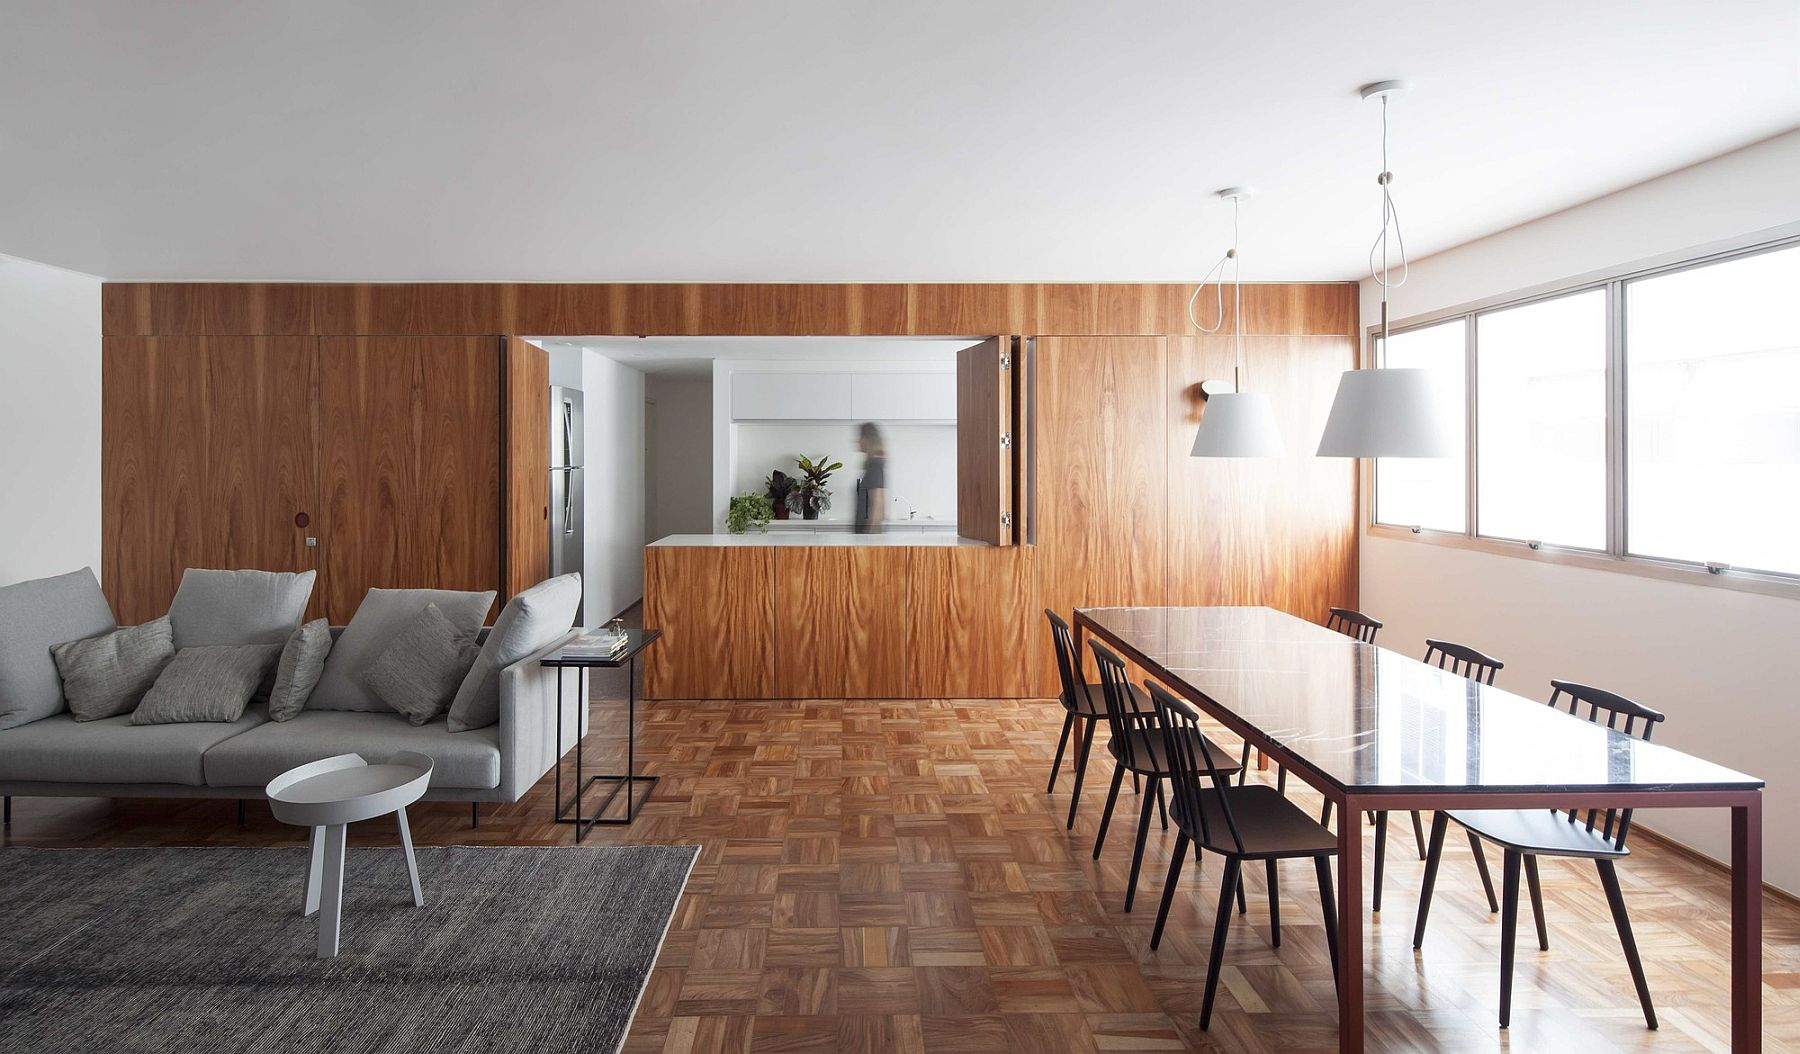 Expansive wooden panelling creates a private bedroom and a fabulous kitchen